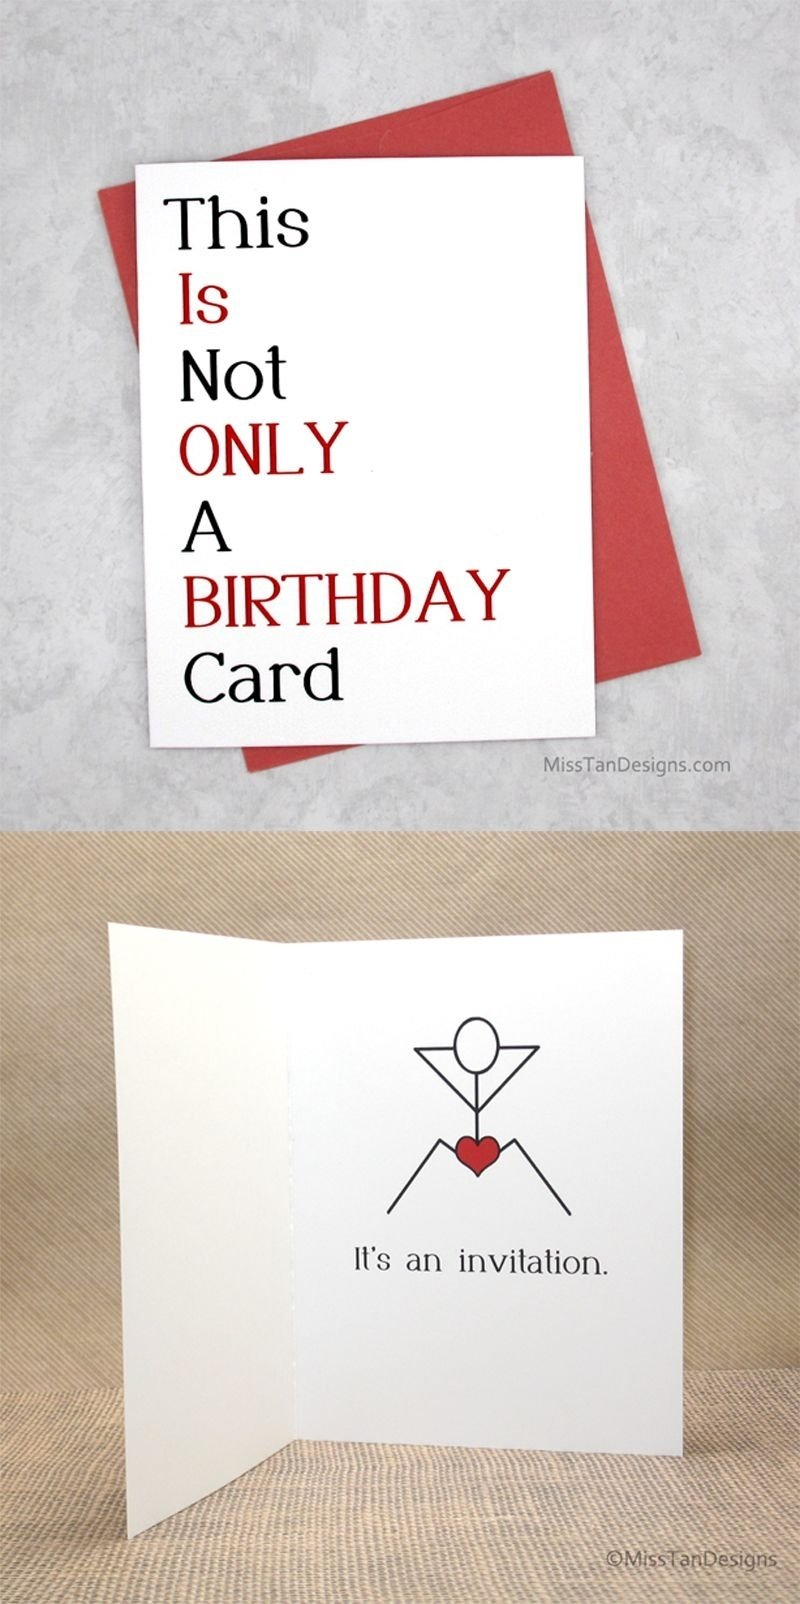 10 Best Birthday Card Ideas For Boyfriend boyfriend birthday cards not only funny gift sexy card adult 4 2020